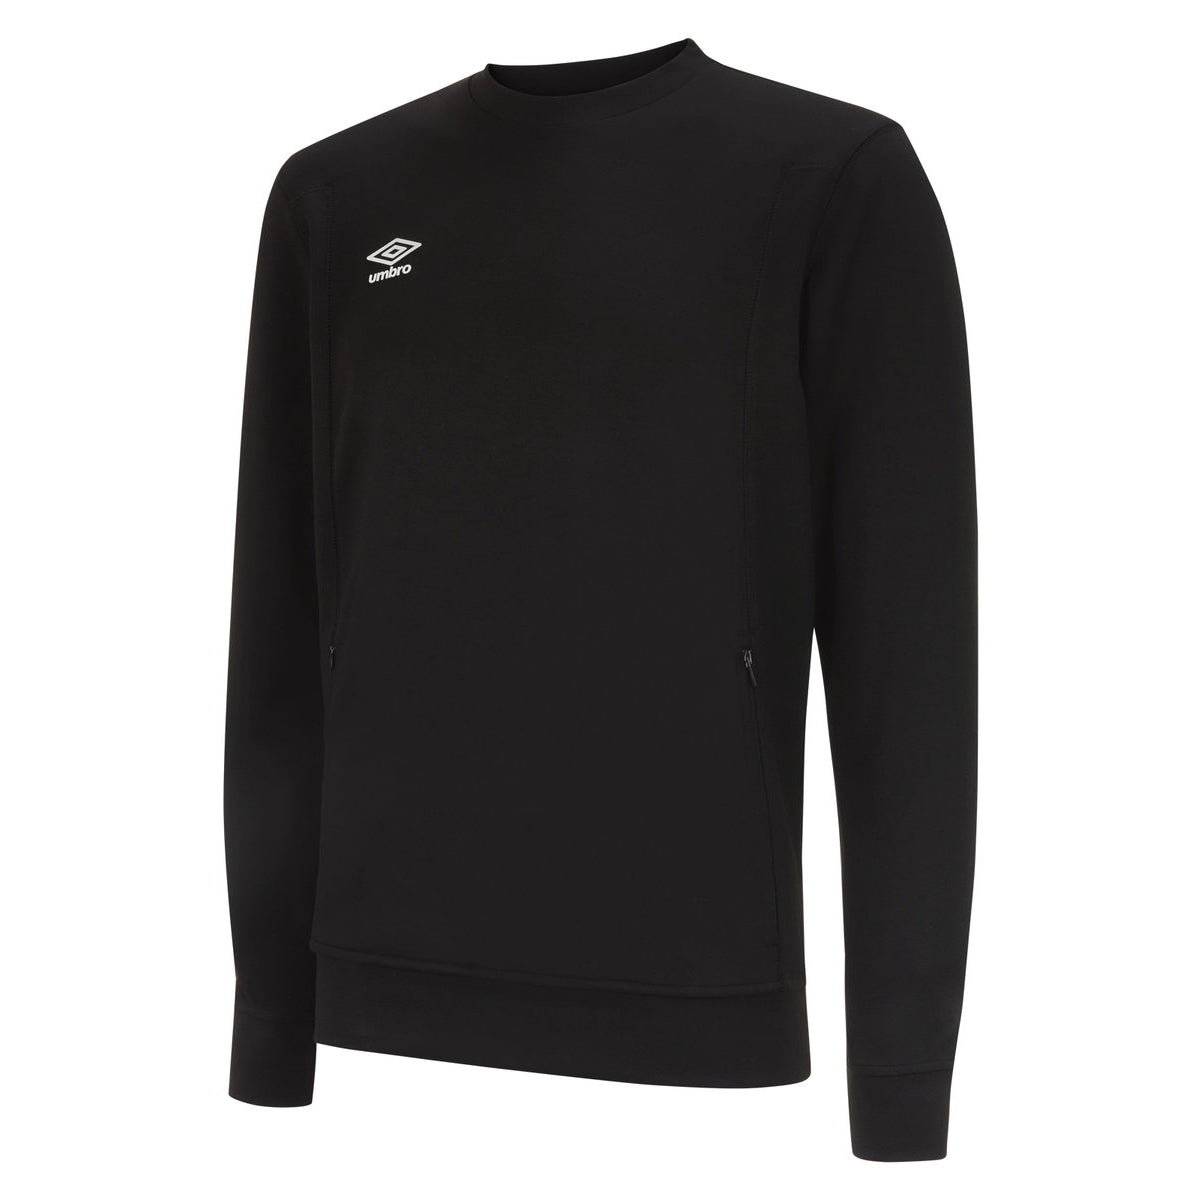 Umbro Pro Fleece Sweat in black with white logo